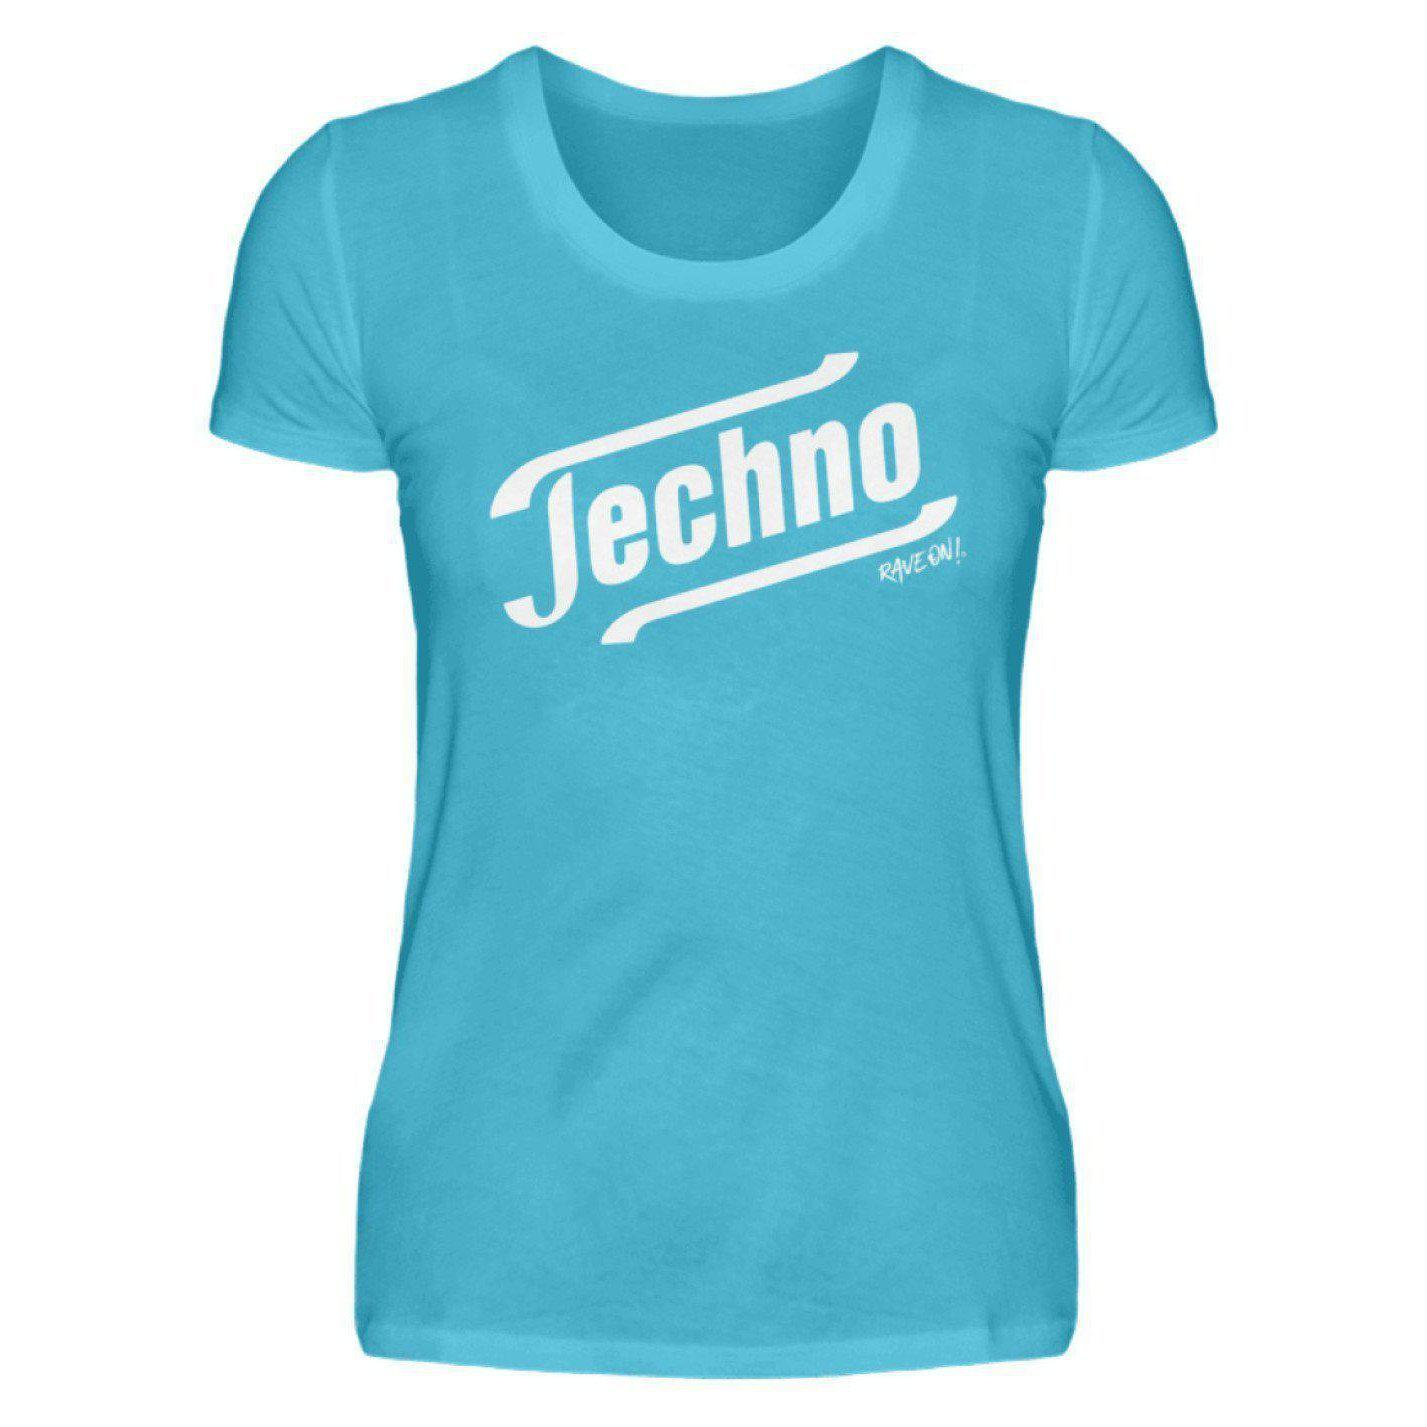 Techno - Tempo Rave On!® T-Shirt - Damenshirt-Damen Basic T-Shirt-Karibik Blau-S-Rave-On! I www.rave-on.shop I Deine Rave & Techno Szene Shop I apparel, brand, Design - Techno - Tempo Rave On!® T-Shirt, font, Funny, i heart raves, meme, music, on, On!®, rave, rave apparel, rave clothes, rave clothing, rave fashion, rave gear, rave on, Rave On!®, rave shop, rave t shirt, rave wear, raver, techno, techno apparel, Tempo, ® - Sexy Festival Streetwear , Clubwear & Raver Style